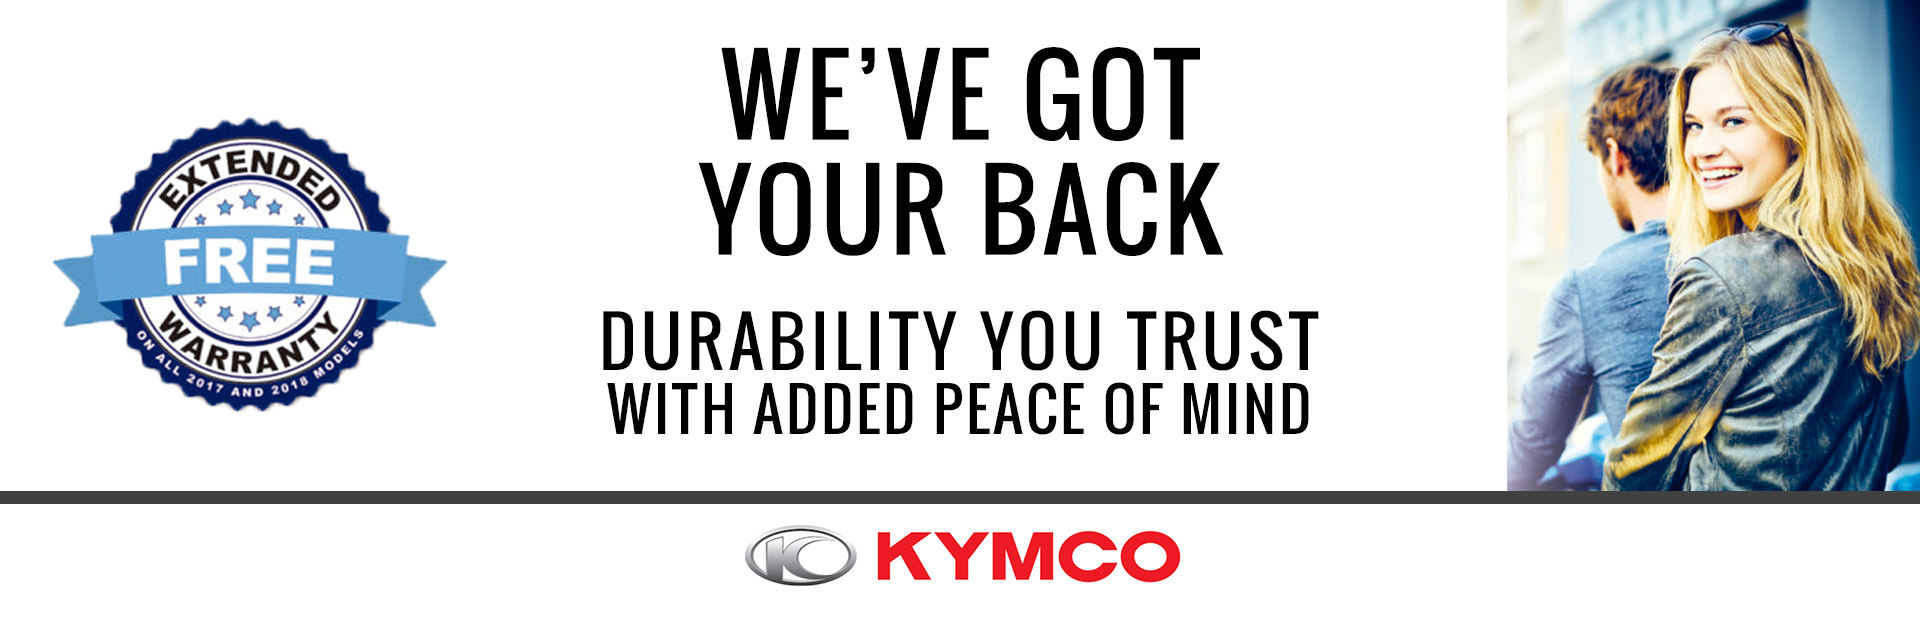 KYMCO: Free Extended Warranty Offer